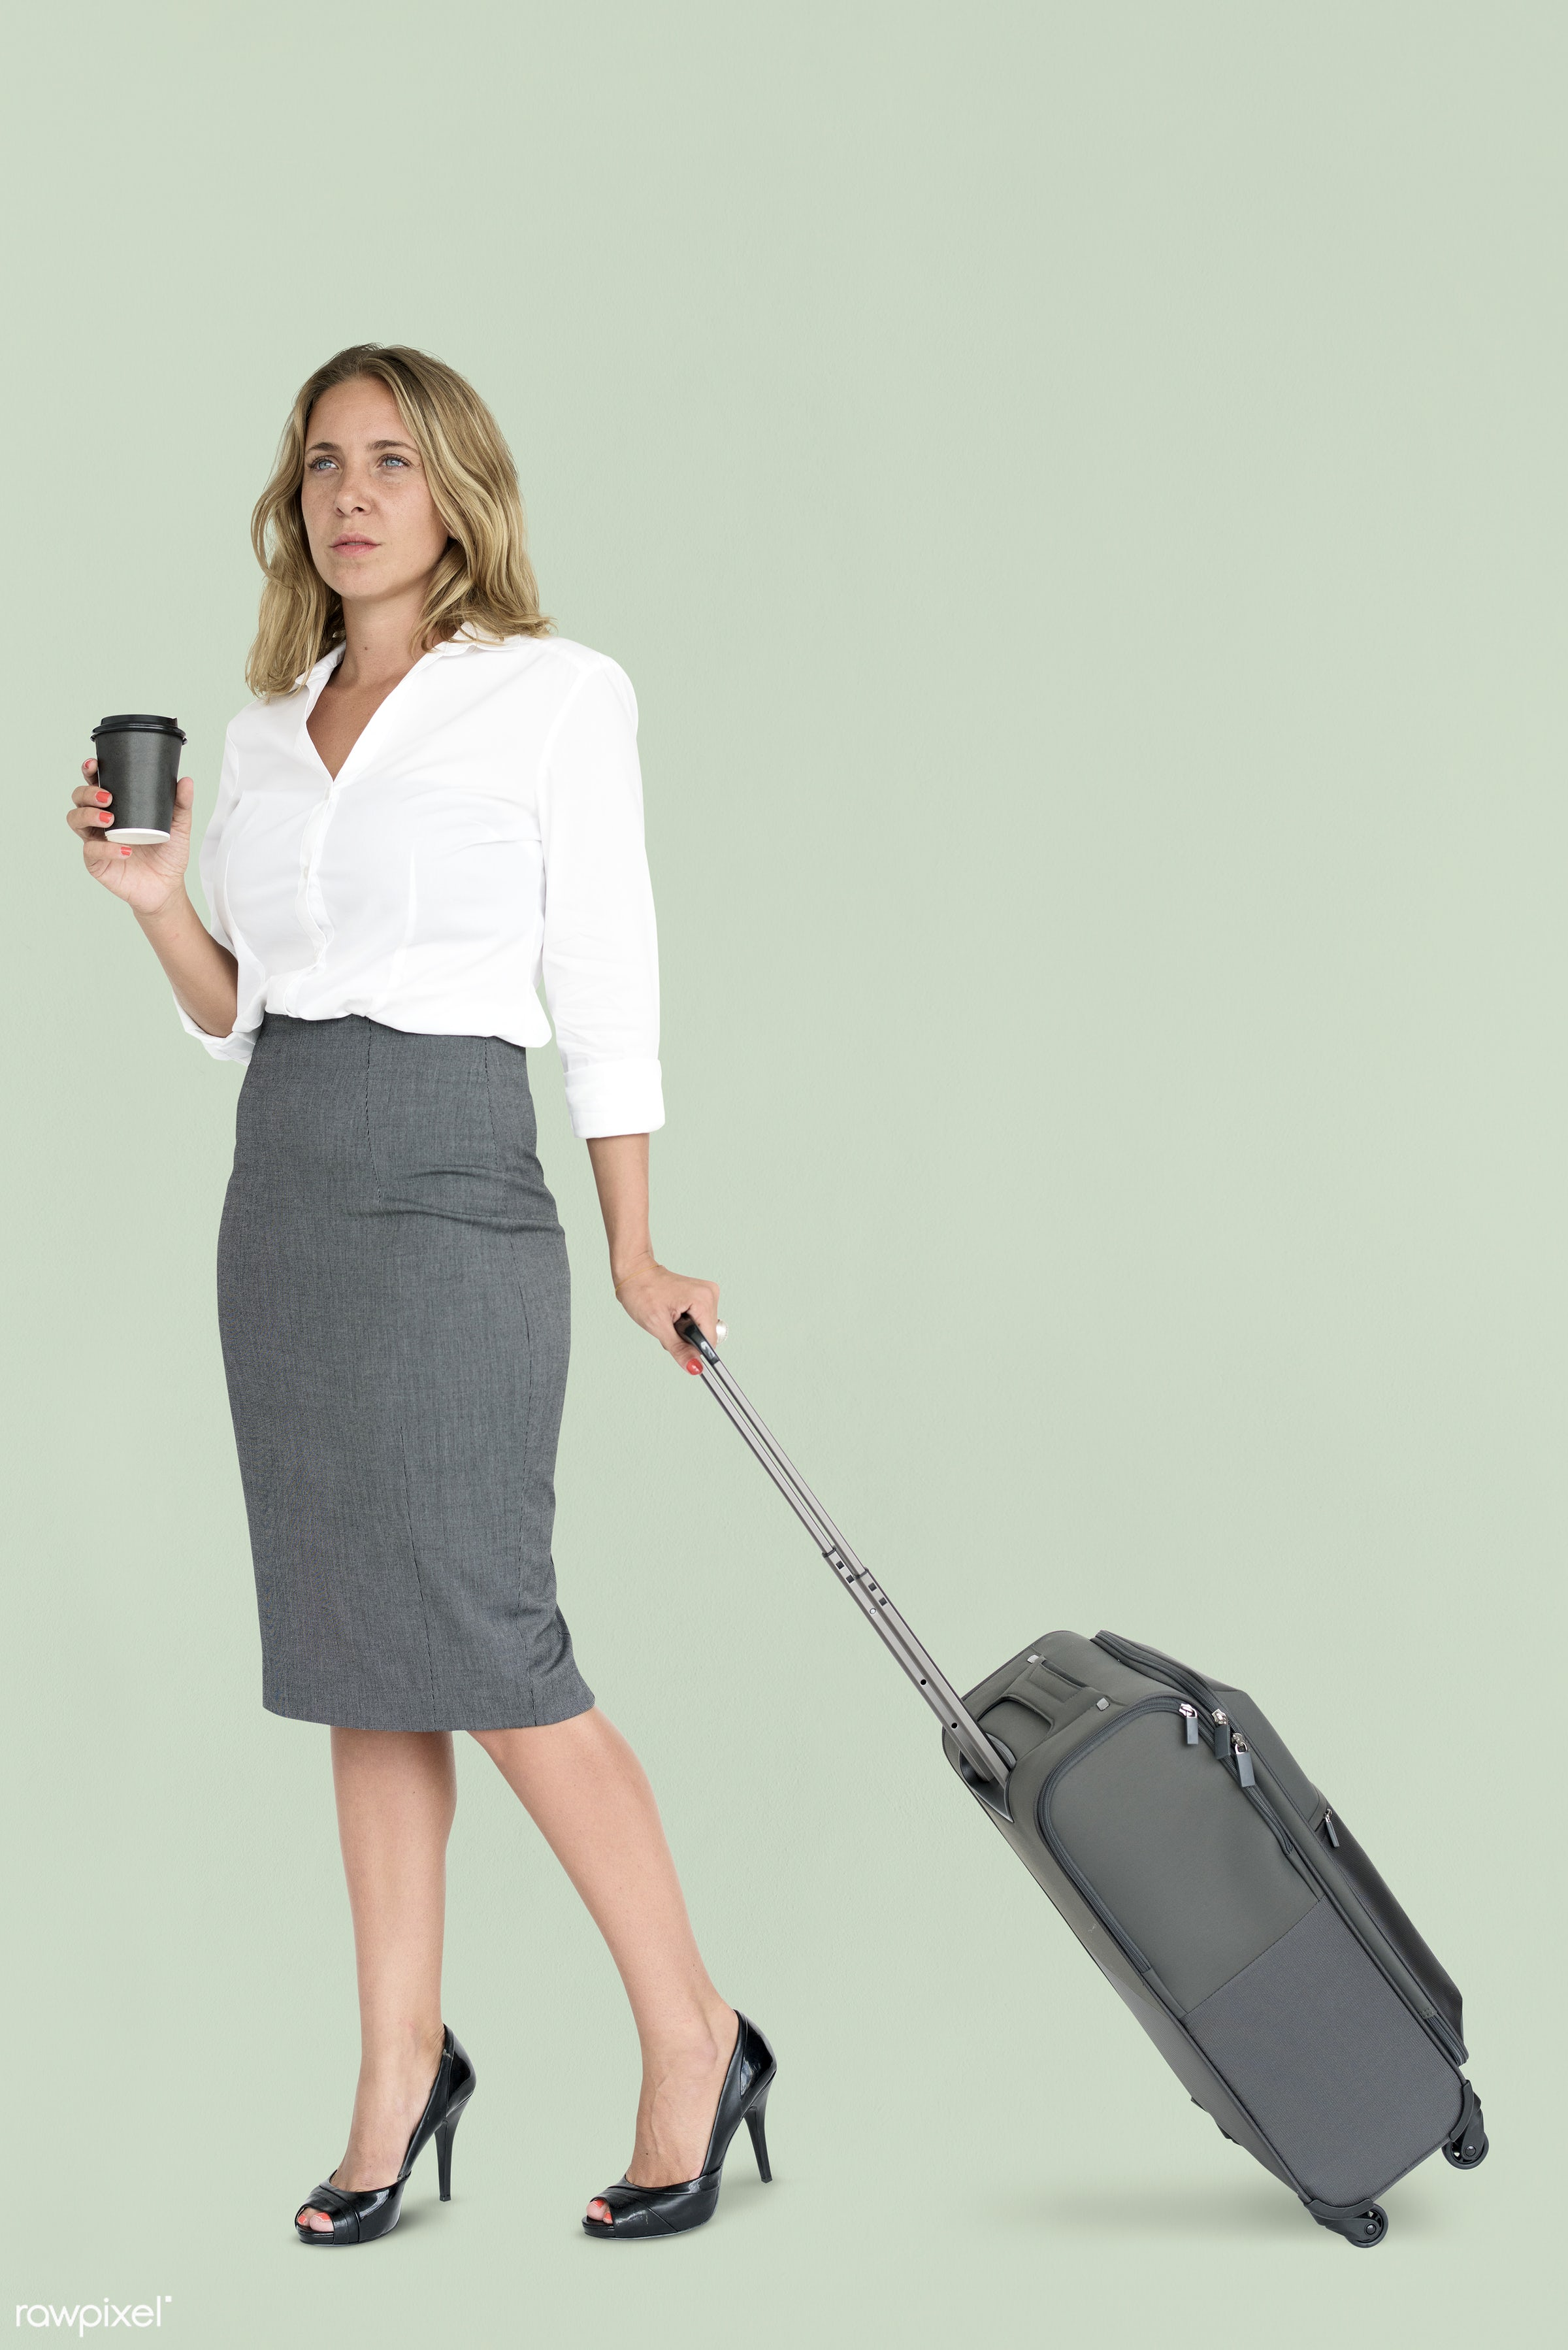 cup, studio, face, person, travel, people, drinks, business, trip, man, isolated, suitcase, green, coffee, male, traveler,...